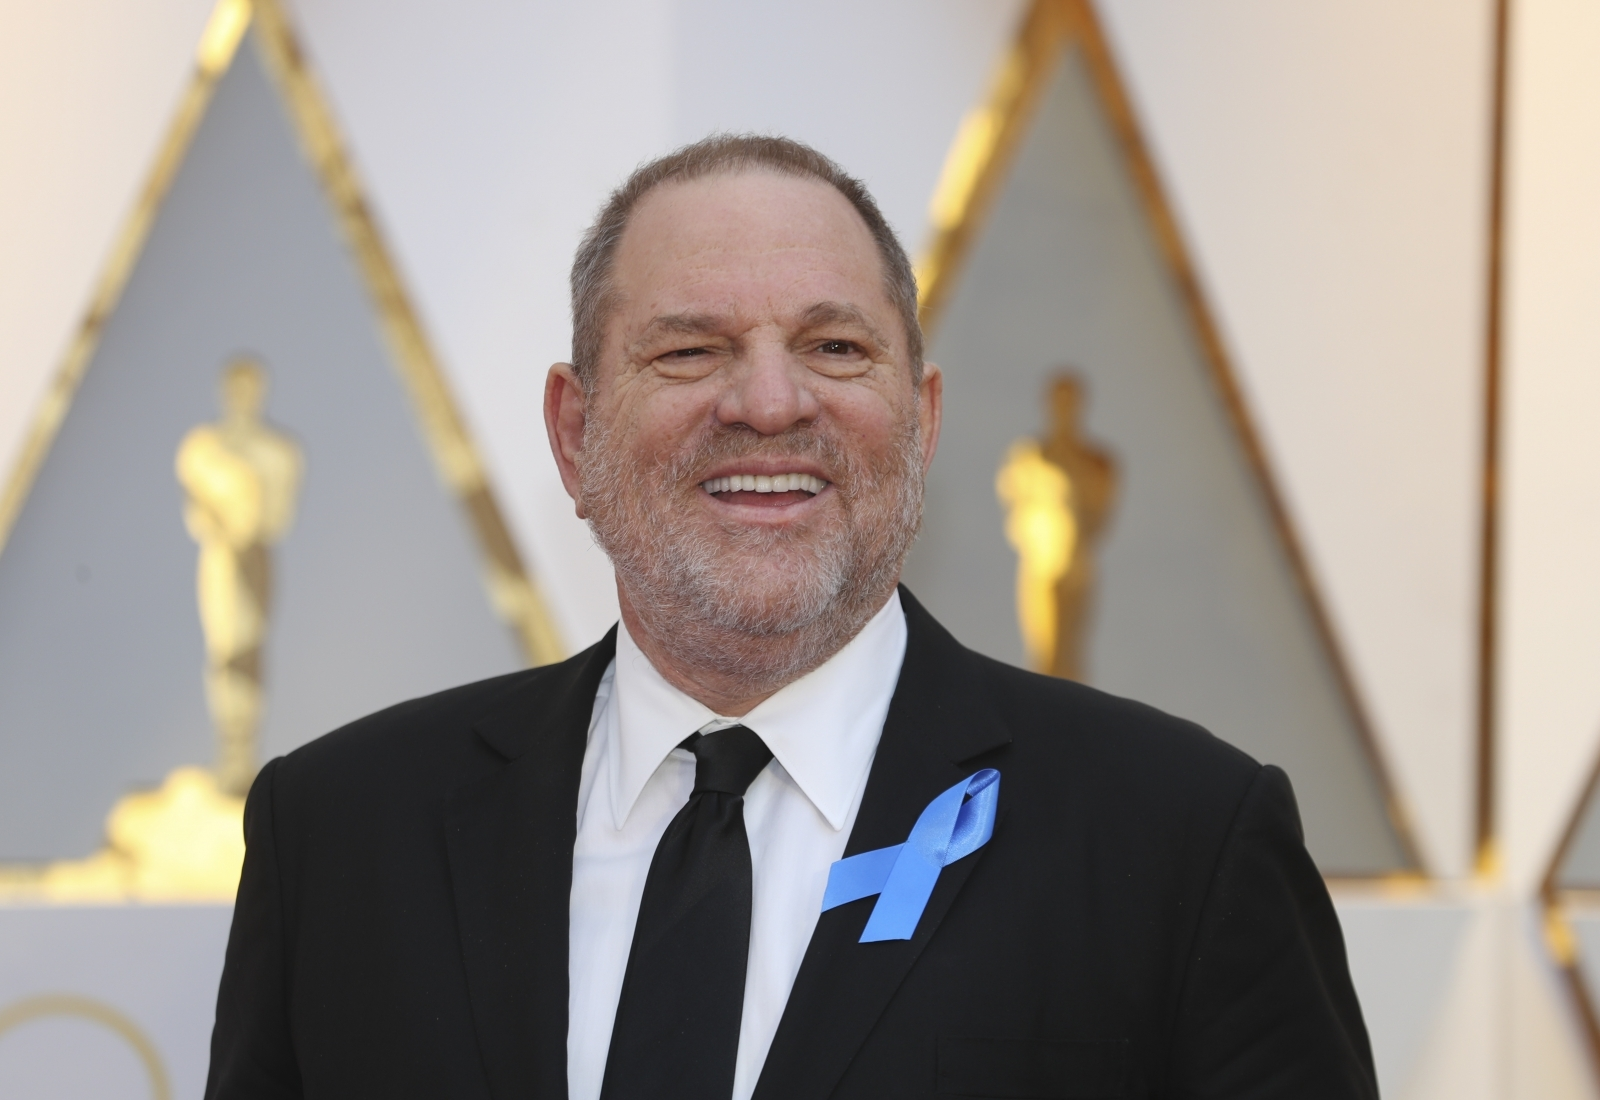 Harvey Weinstein fired over sexual harassment allegations